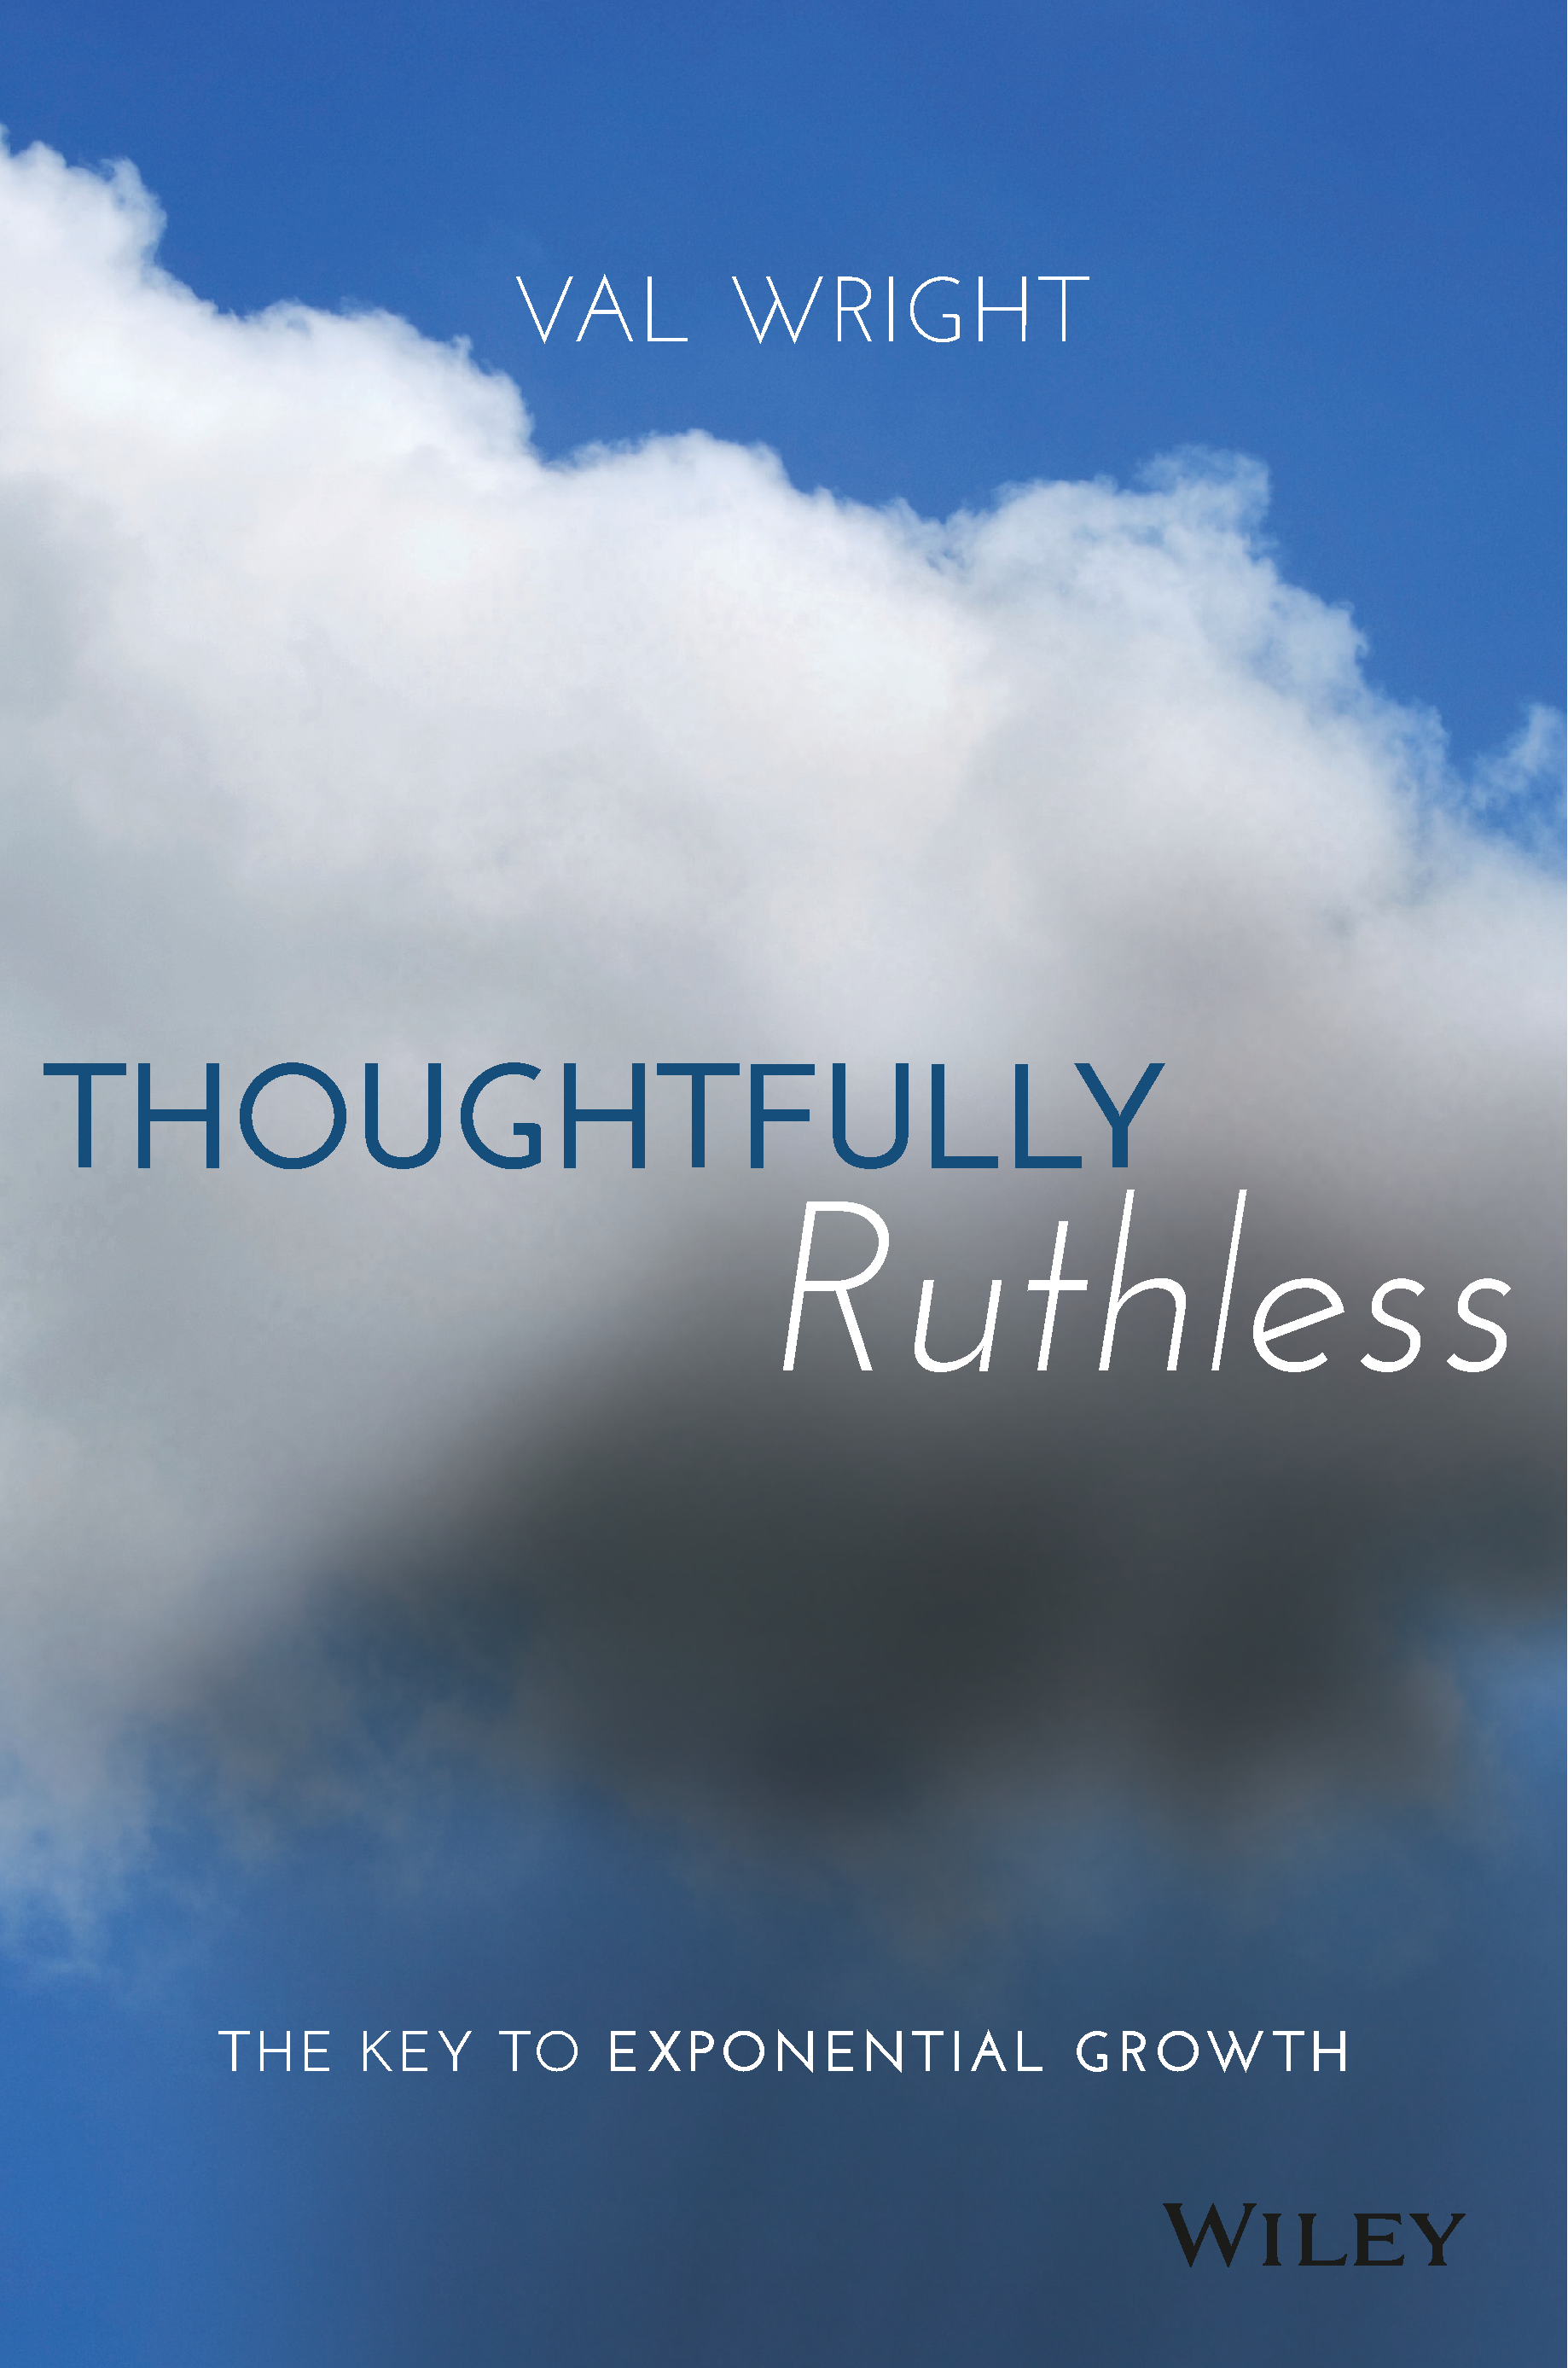 ThoughtfullyRuthlessFrontCover.png